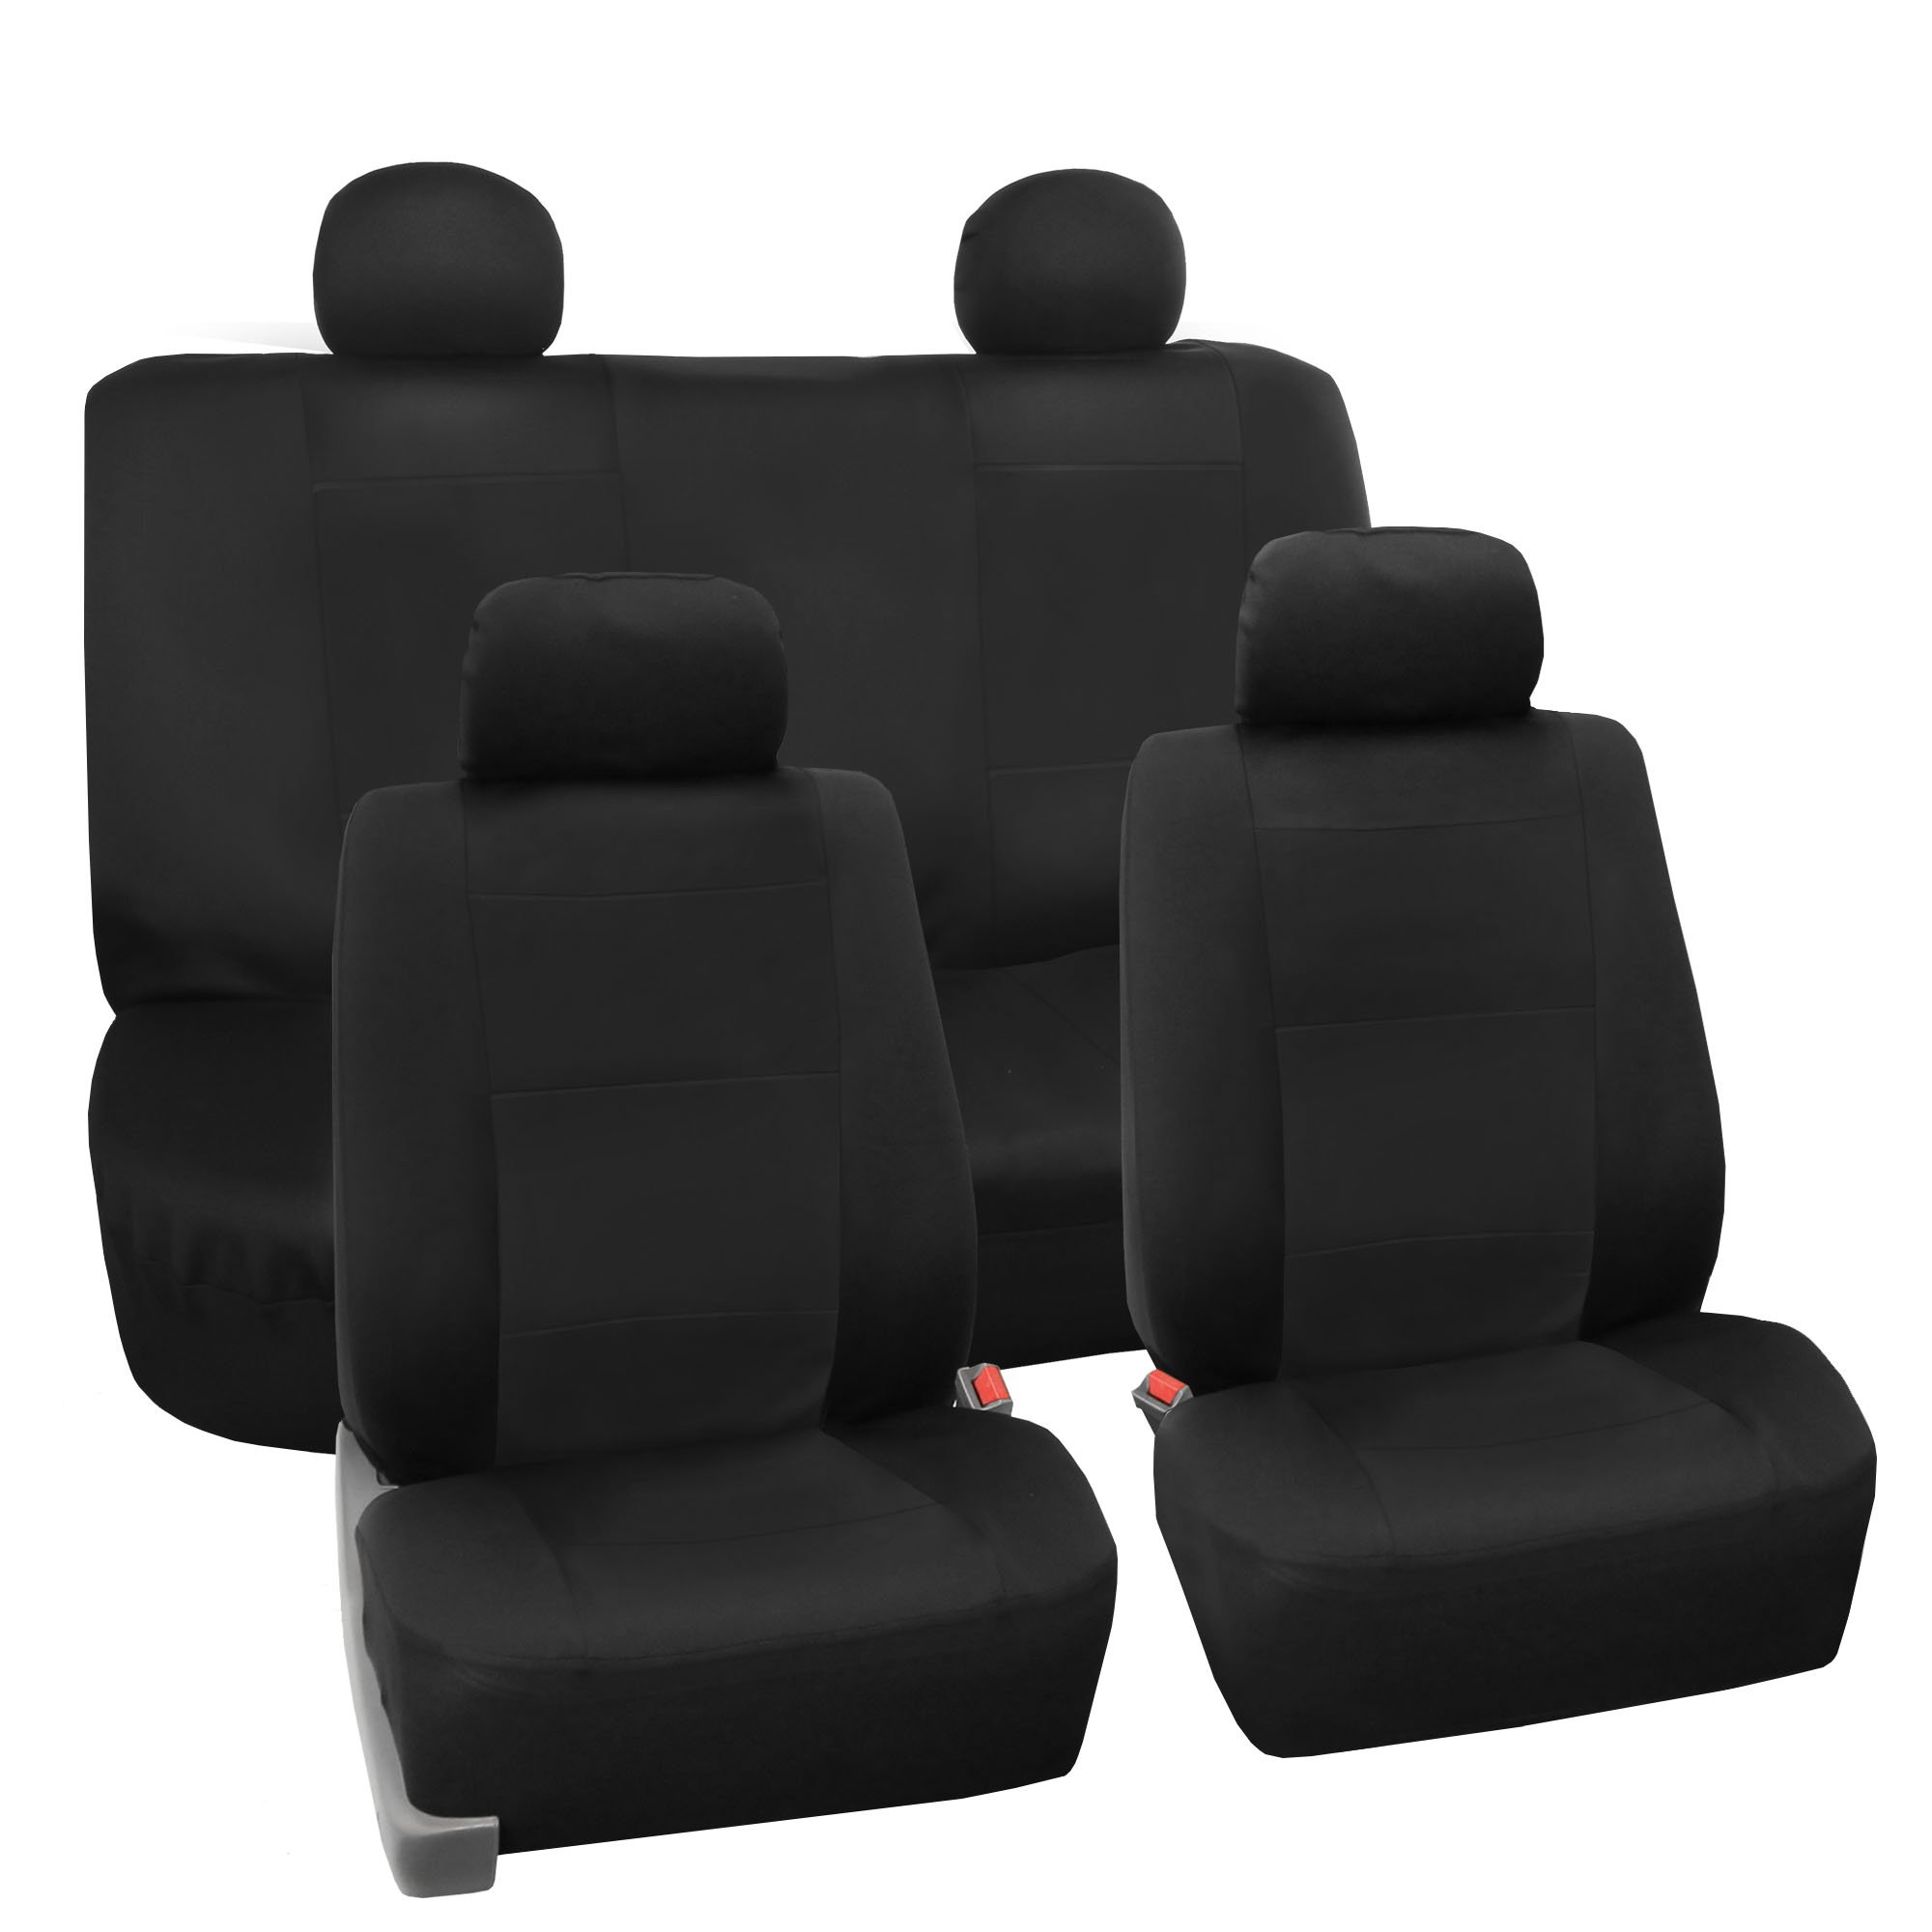 FH Group FB085BLACK114 Seat Cover Neoprene Blend Waterproof Seat covers Full Set with Bench Black by FH Group